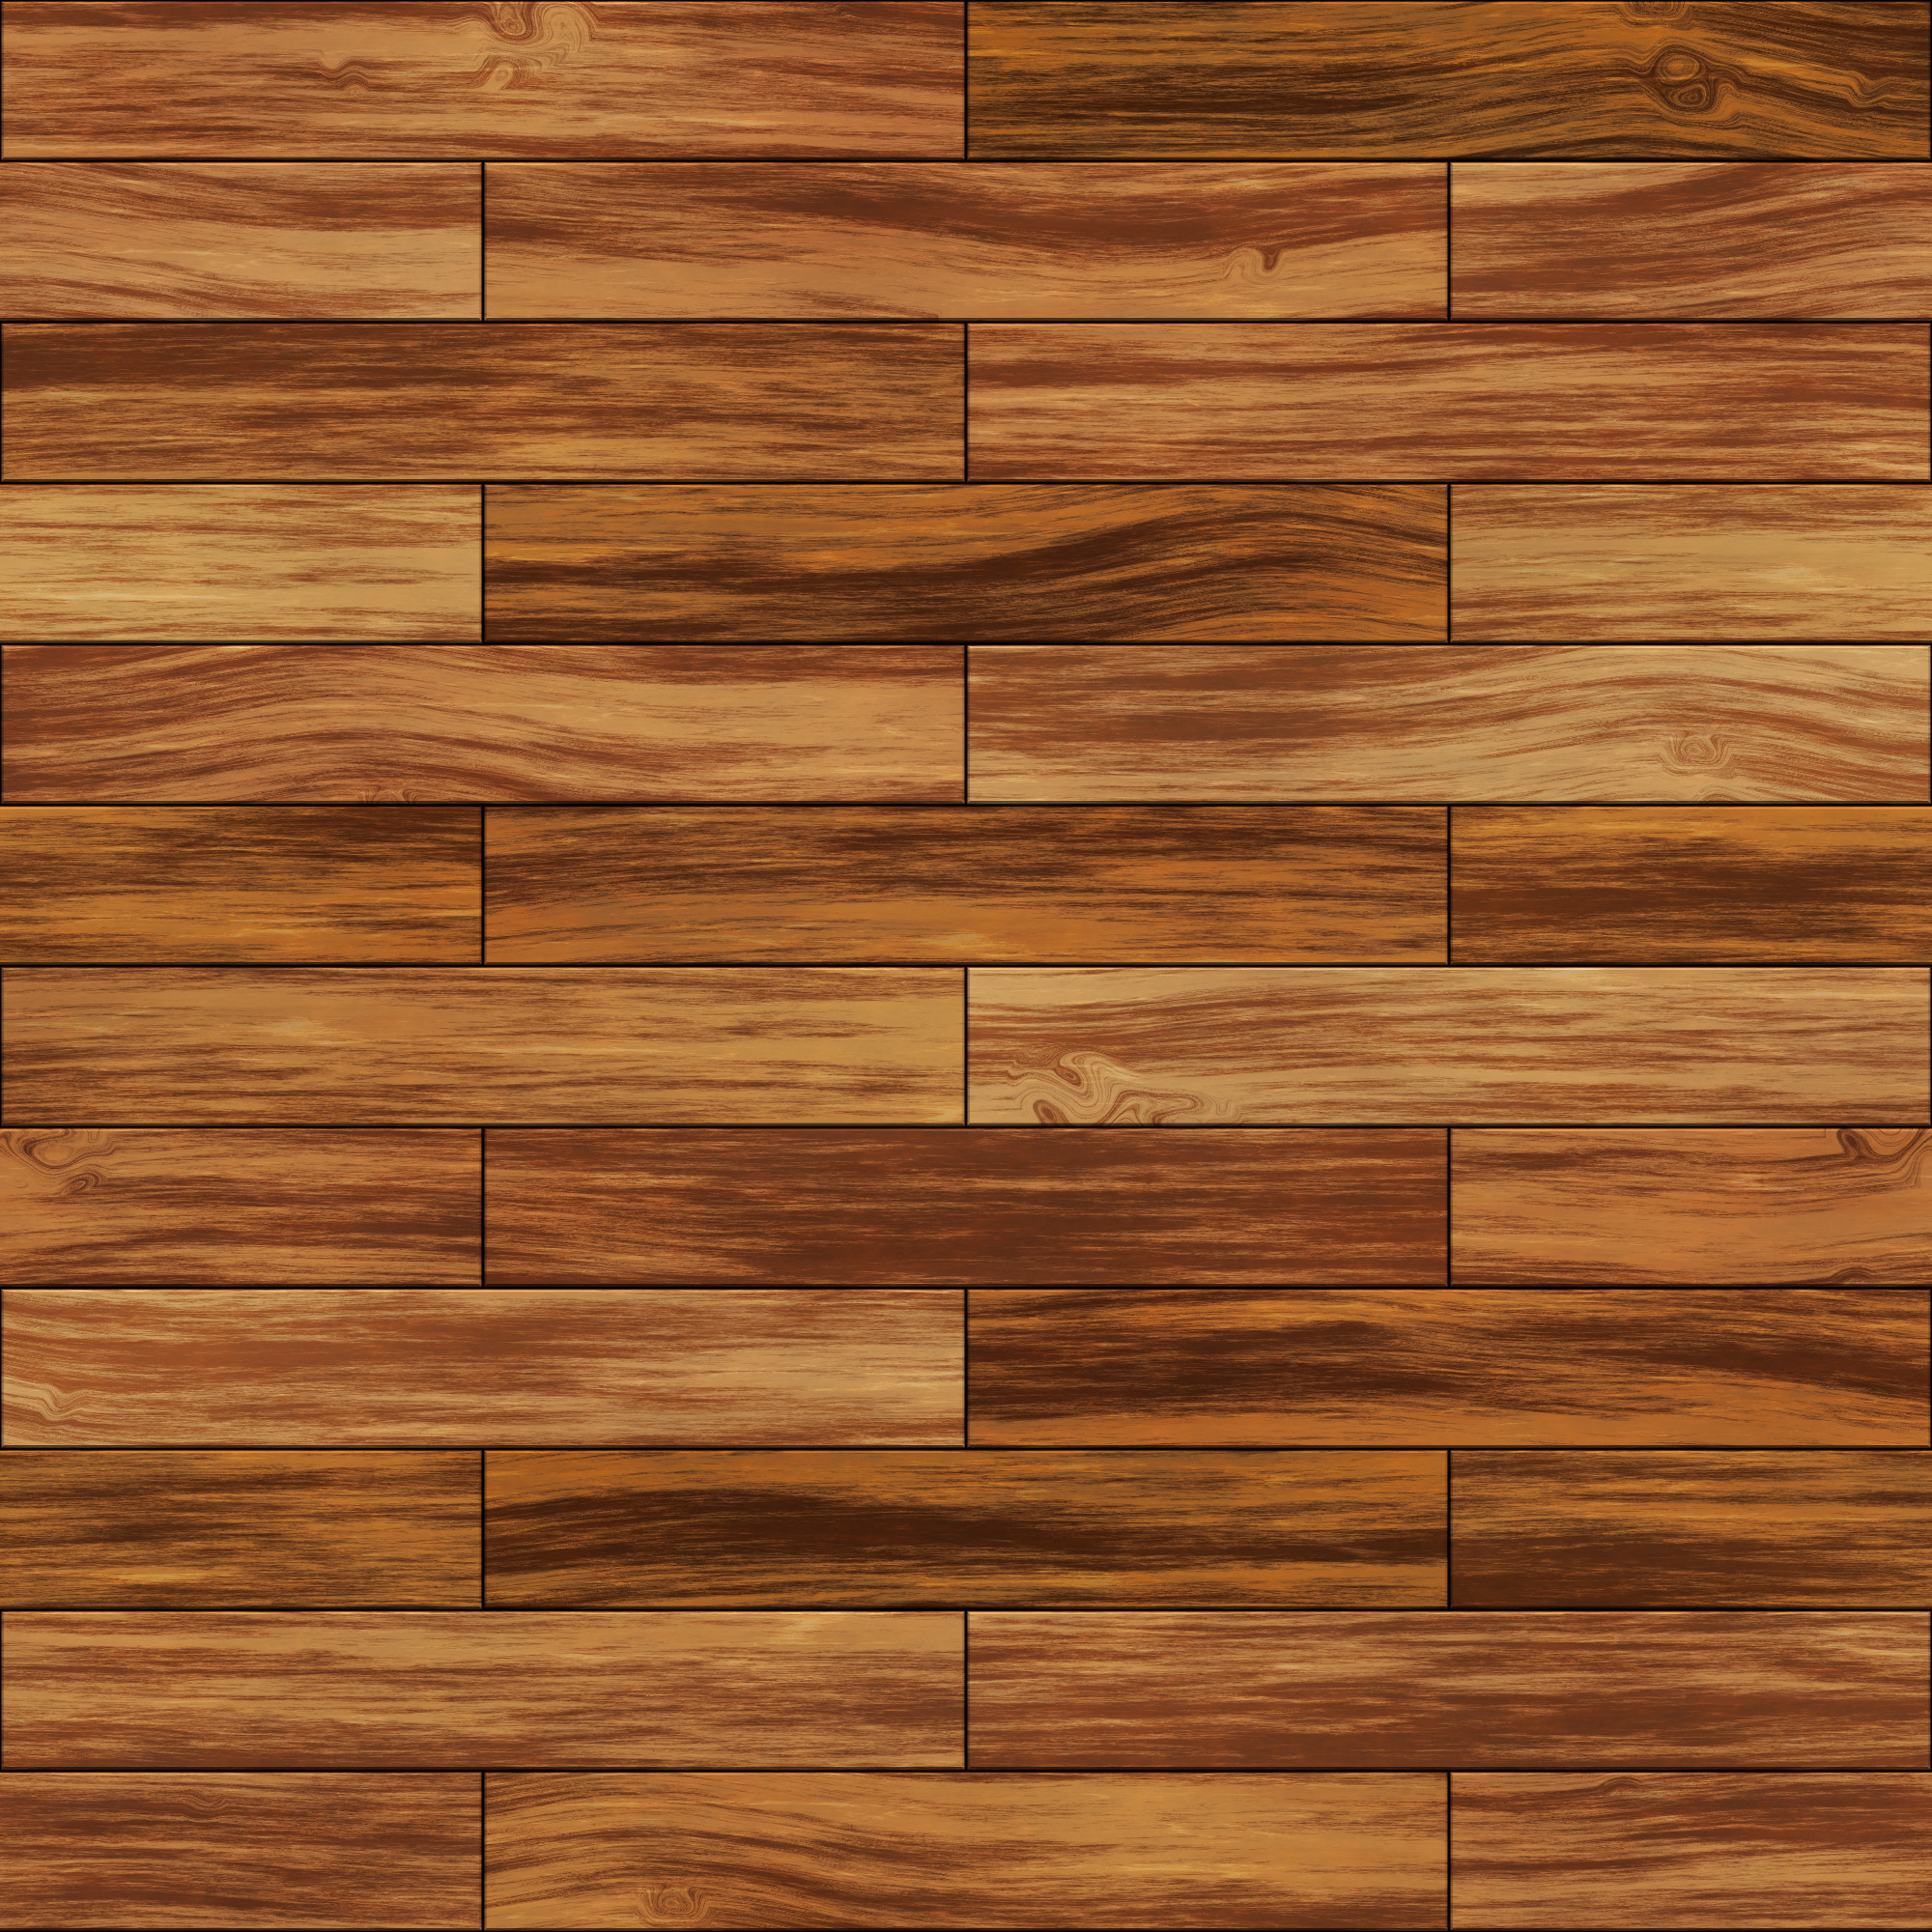 wood flooring texture seamless background wood planks 1 MGLOXGT